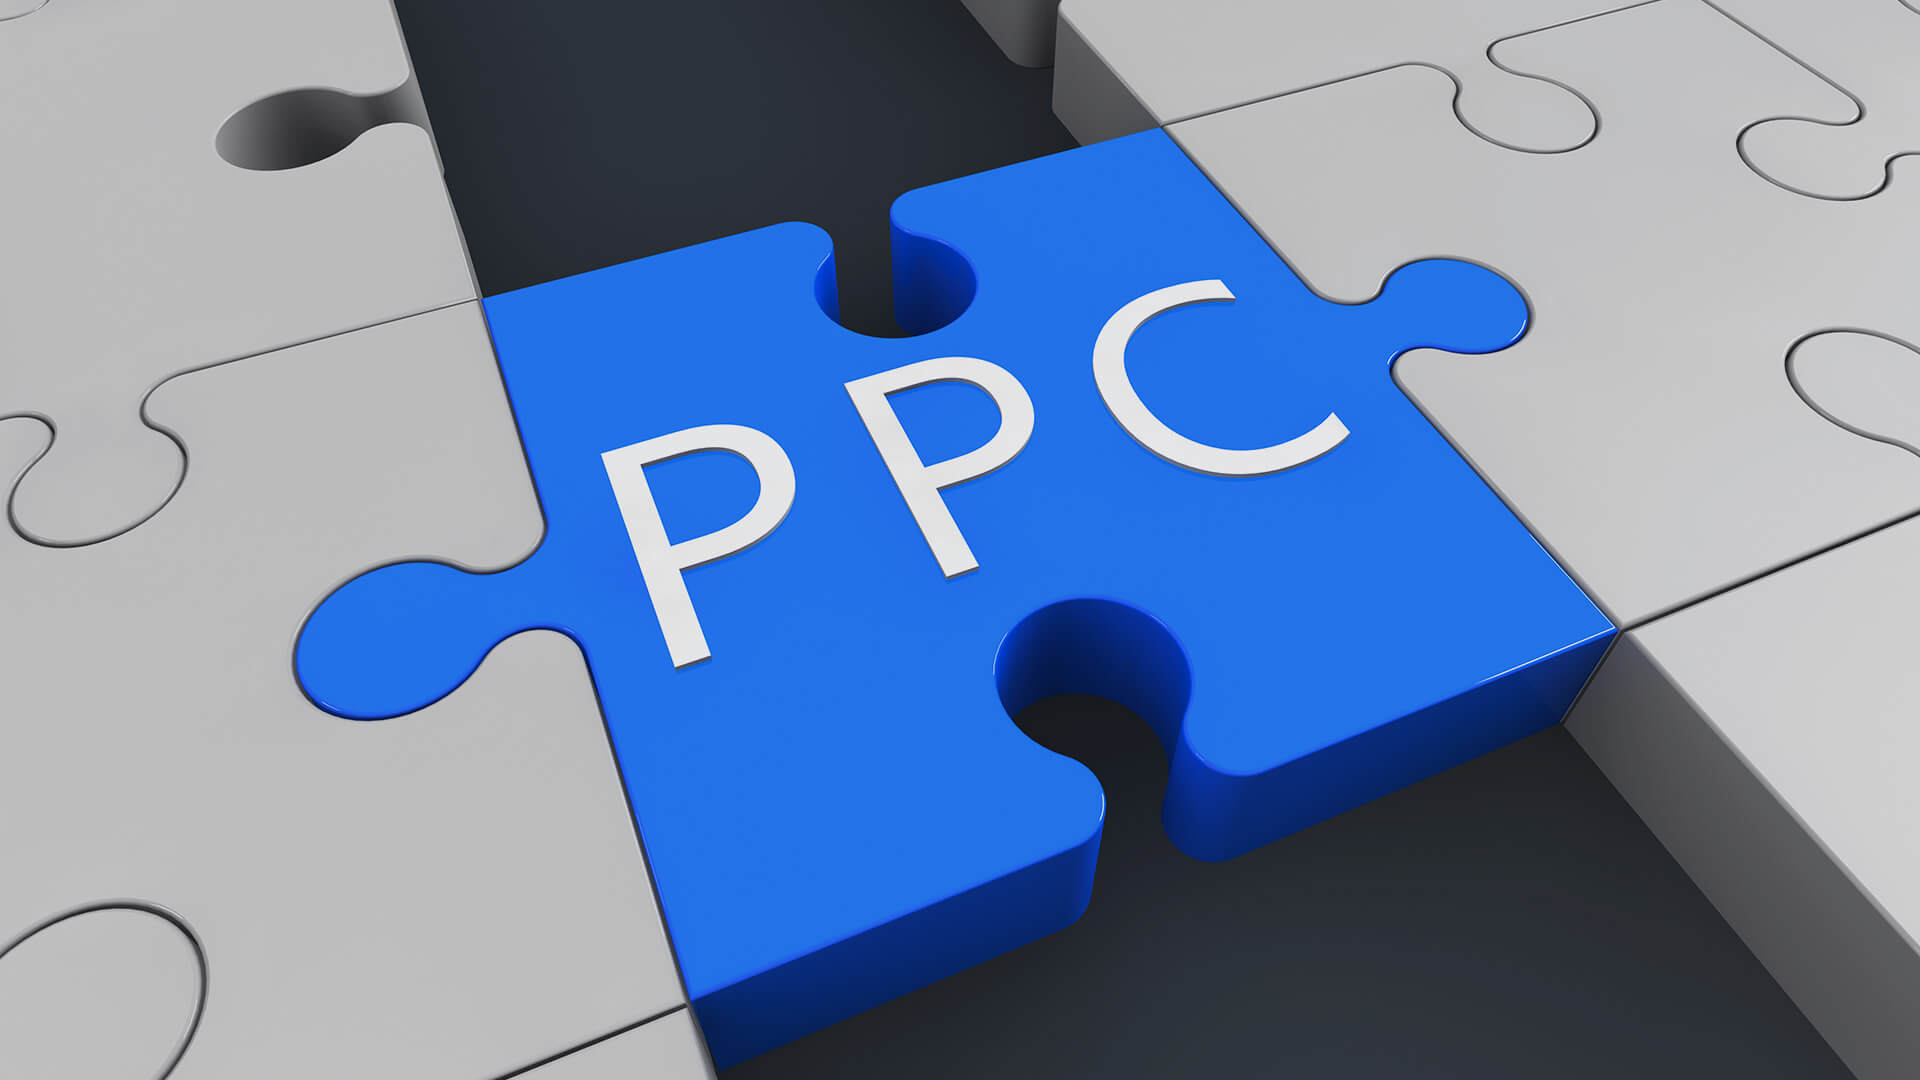 ppc company in lucknow, PPC/CPC Advertising